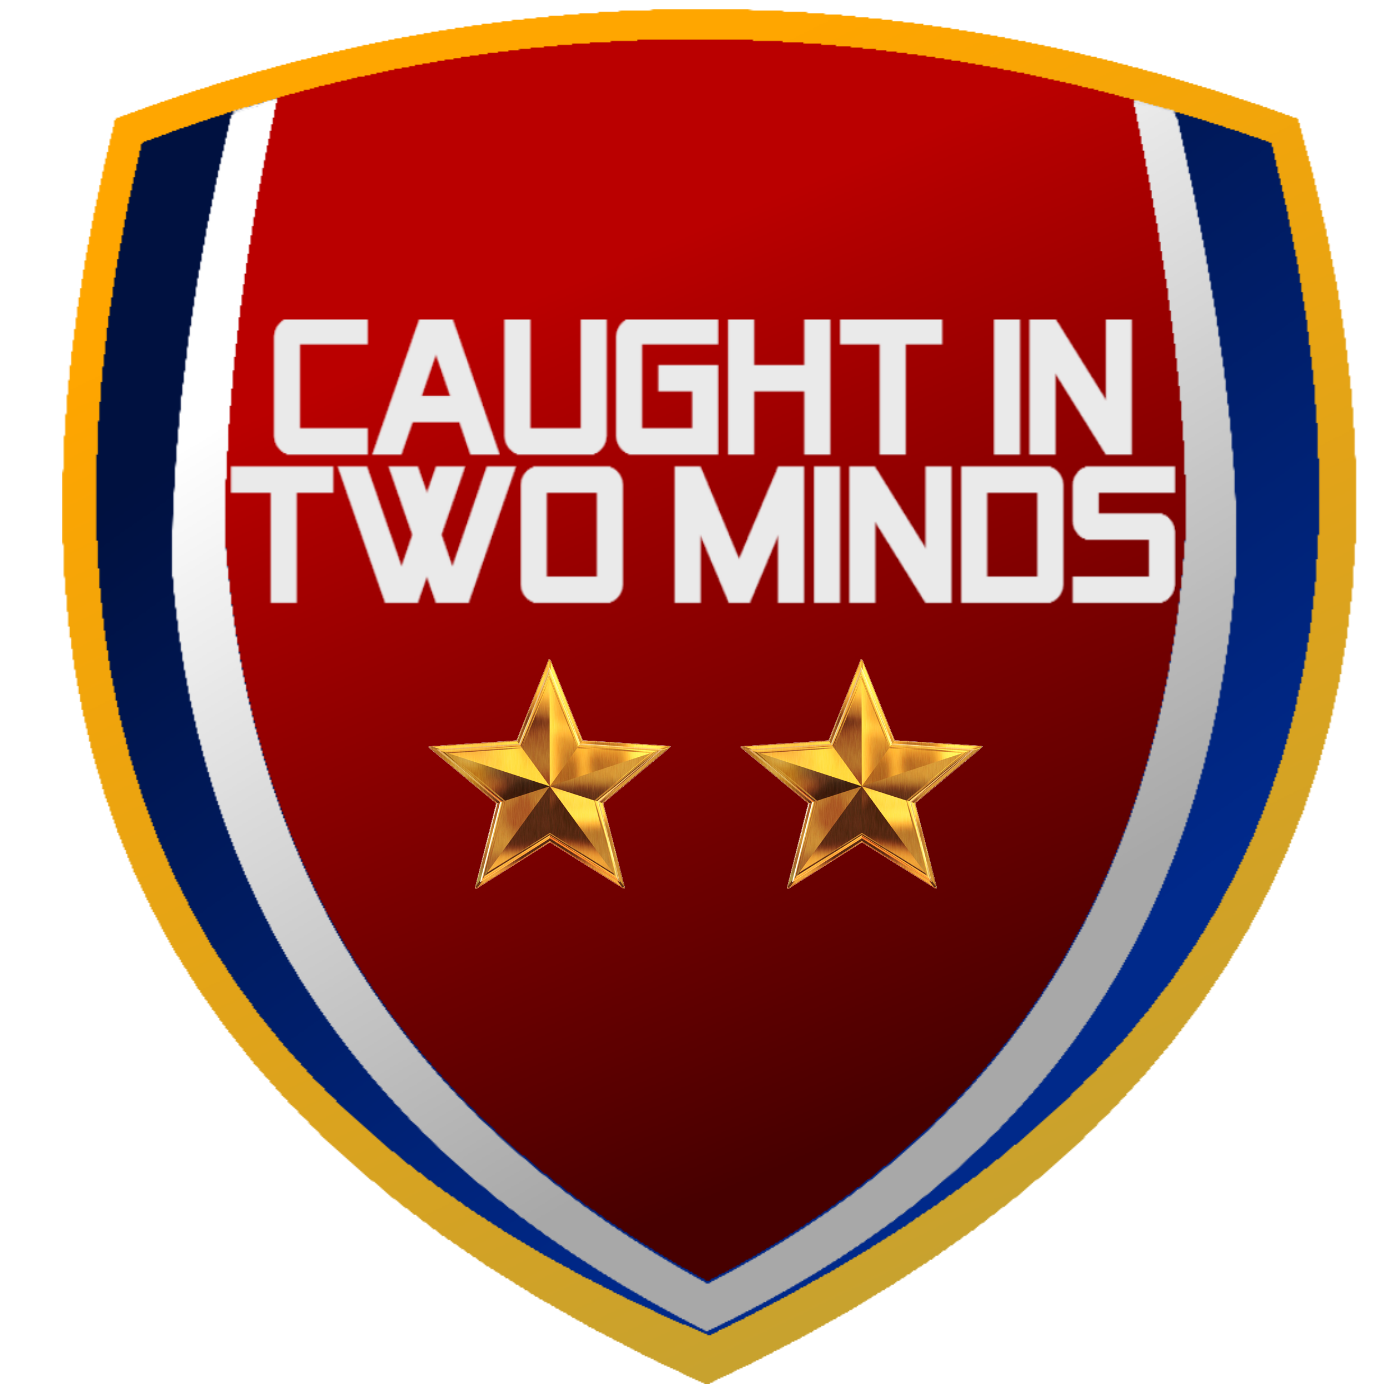 11 - Caught In Two Minds